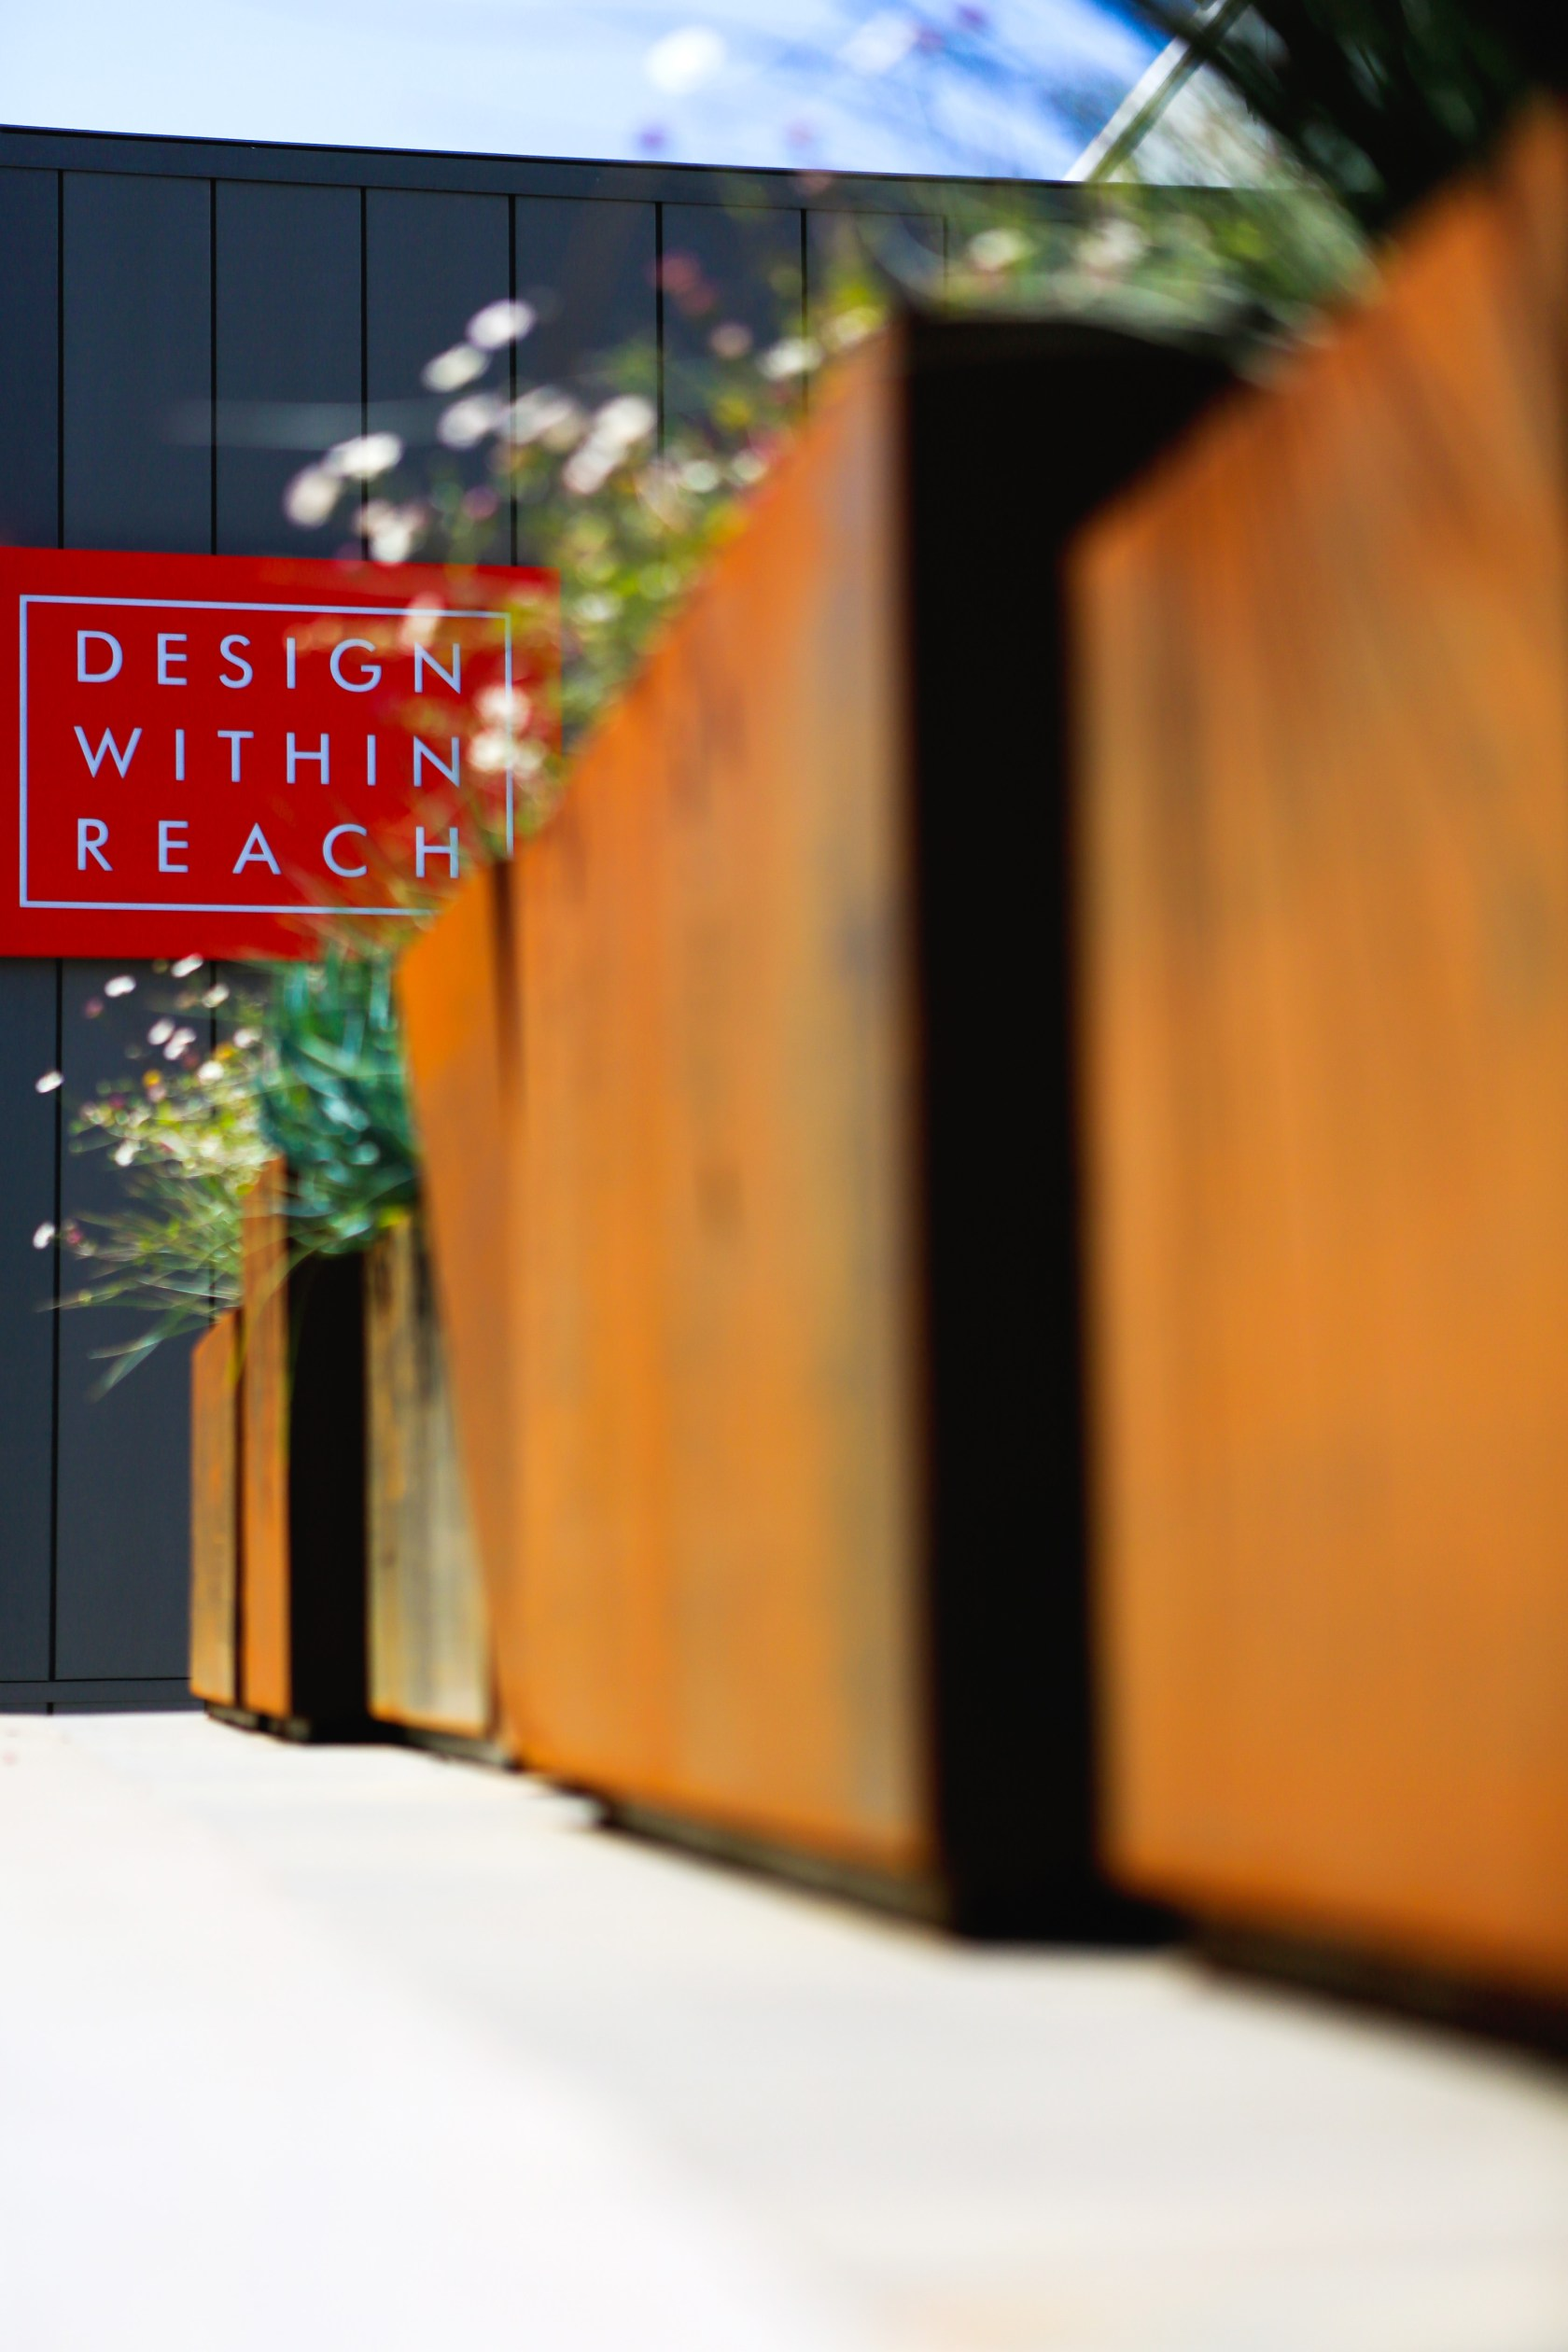 Design Within Reach San Francisco  Architizer